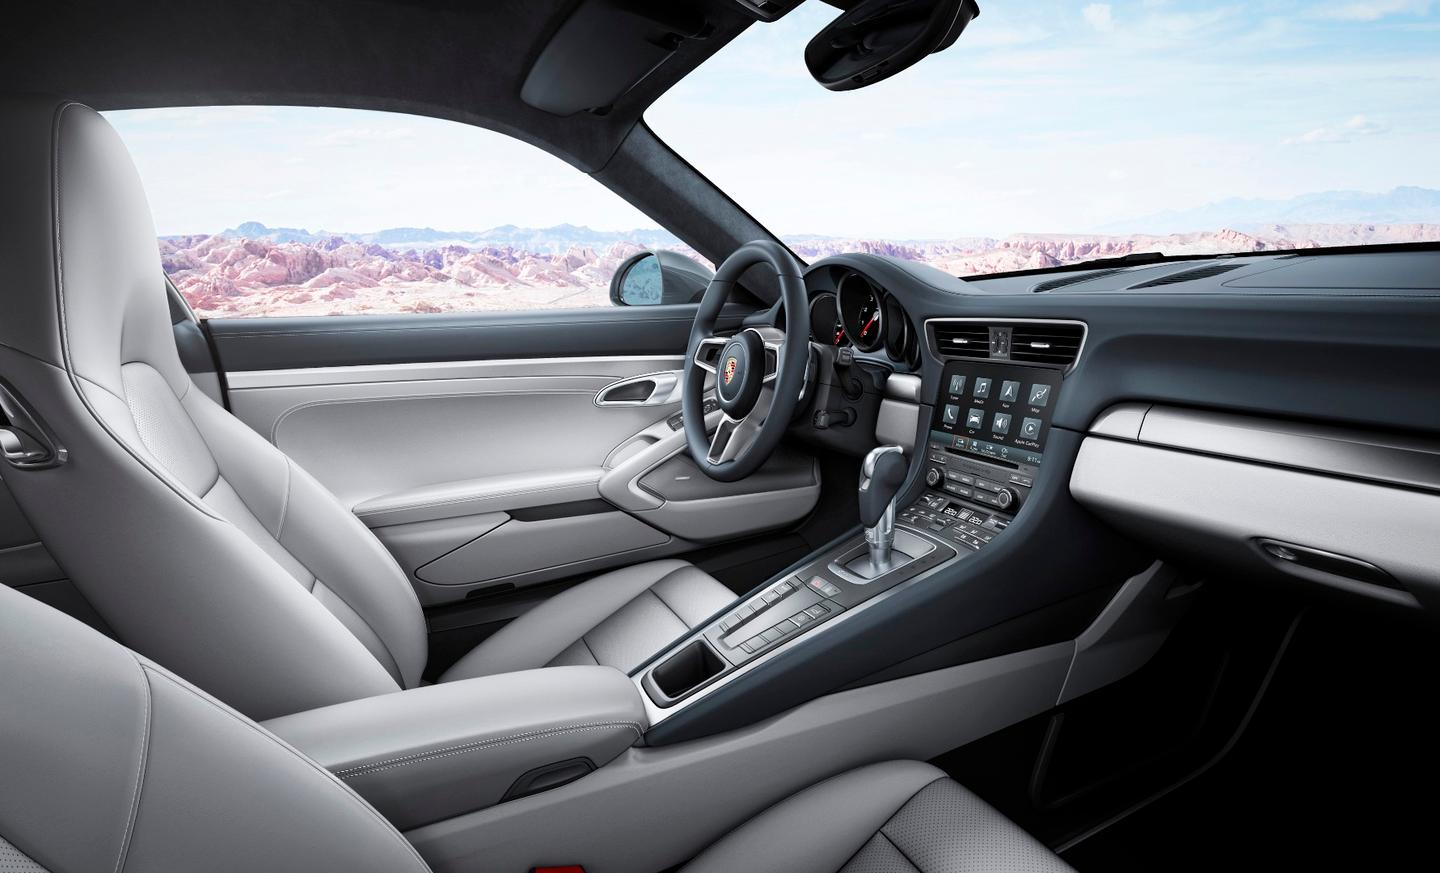 The new 911 Carrera debuts a new infotainment system for Porsche